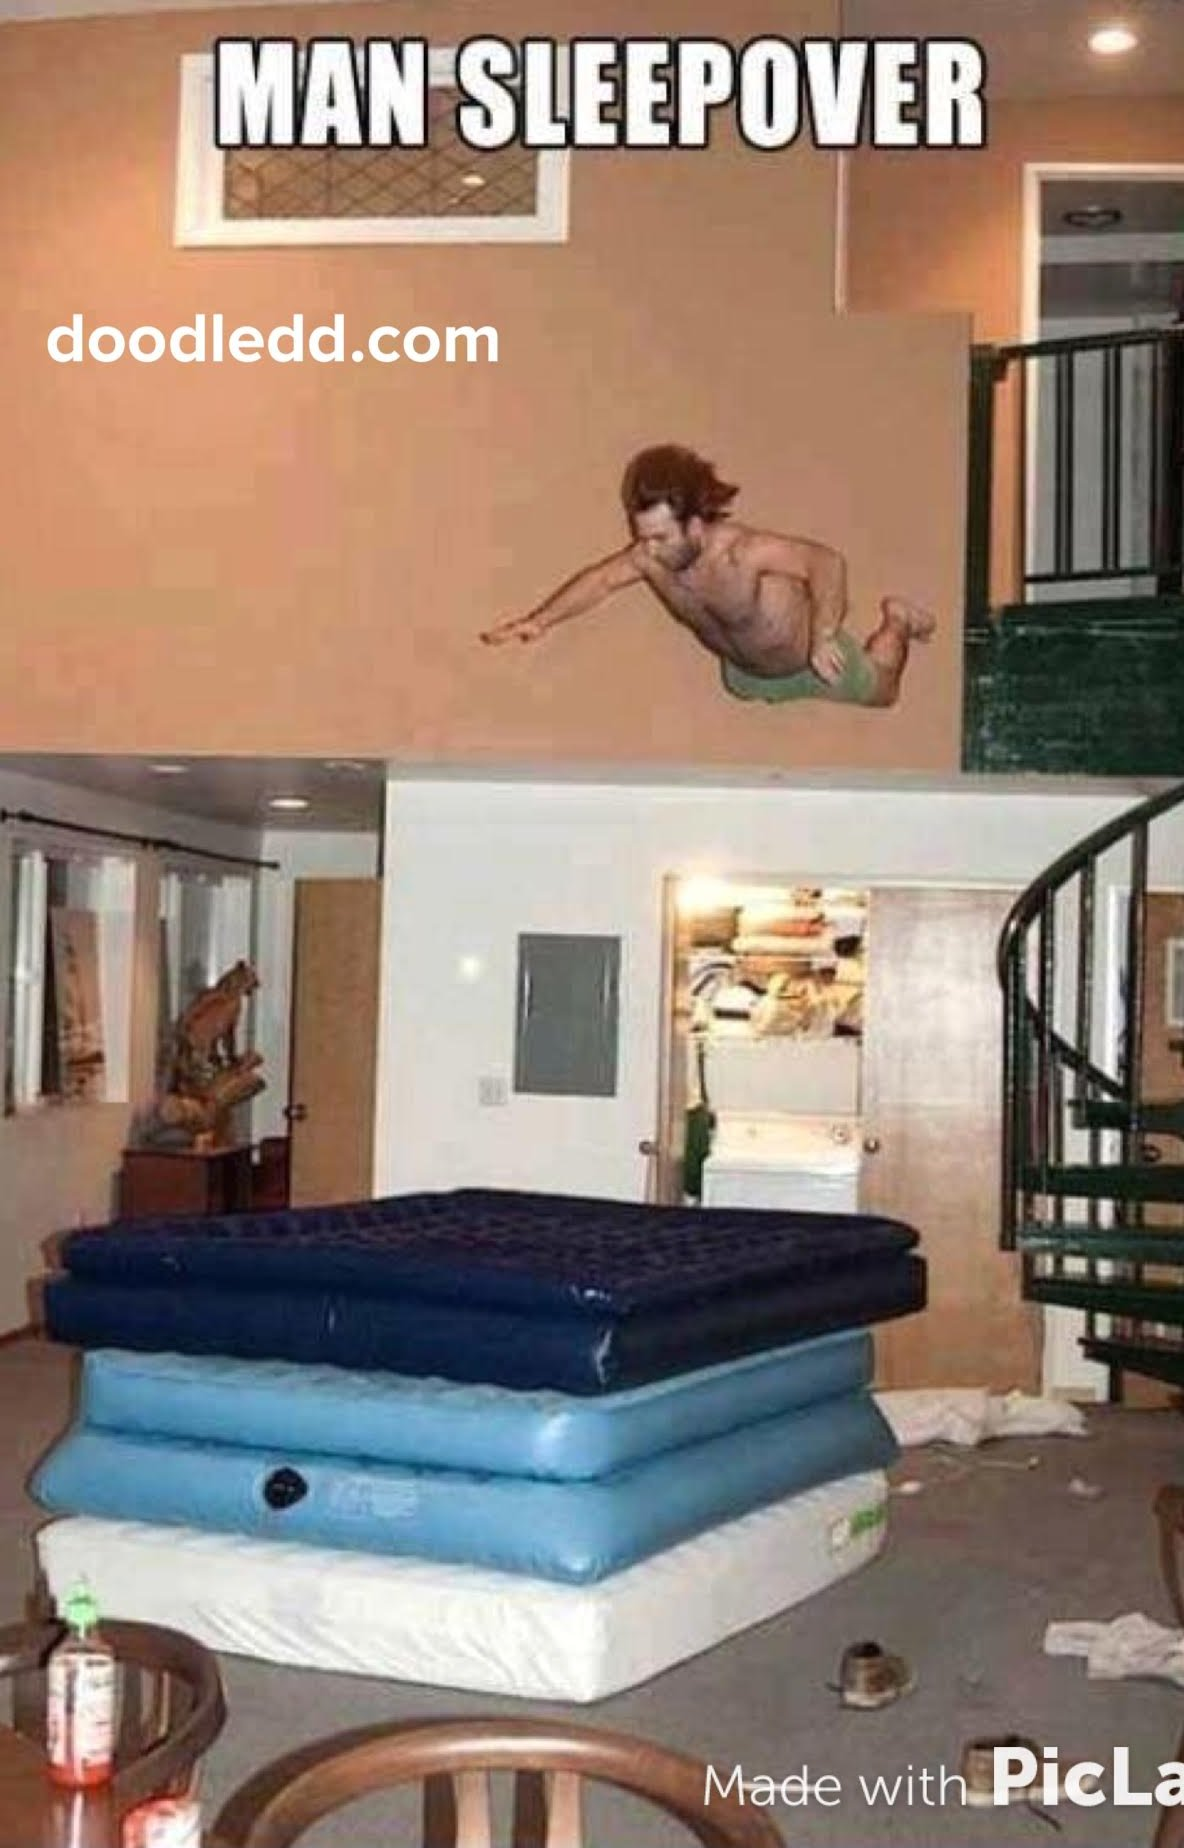 ManSleepover = Man diving onto air mattresses